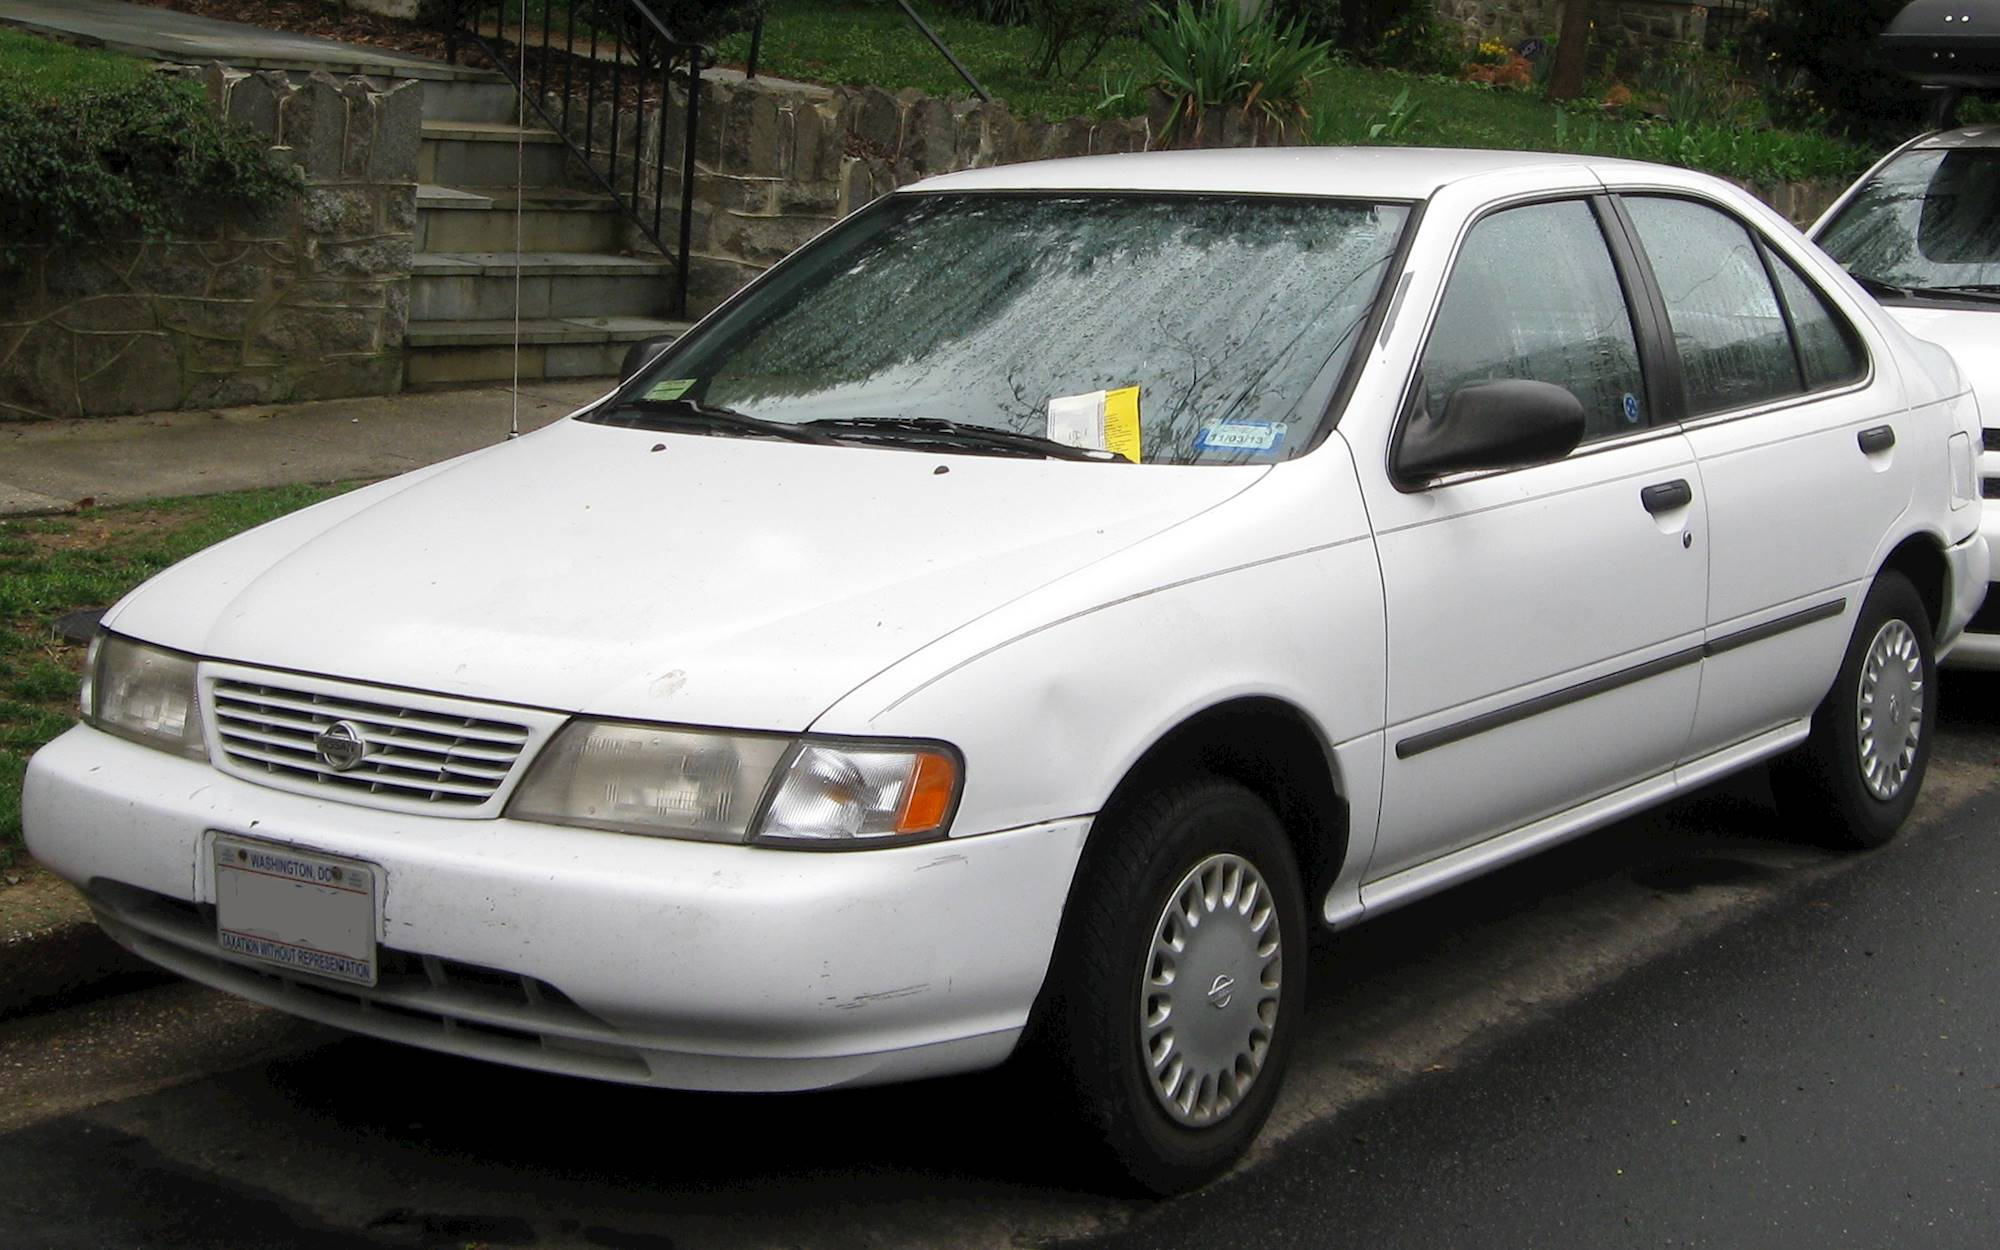 1997 Nissan Sentra Xe Sedan 1 6l Manual Rh Carspecs Us 97 Nissan Sentra  Manual Transmission